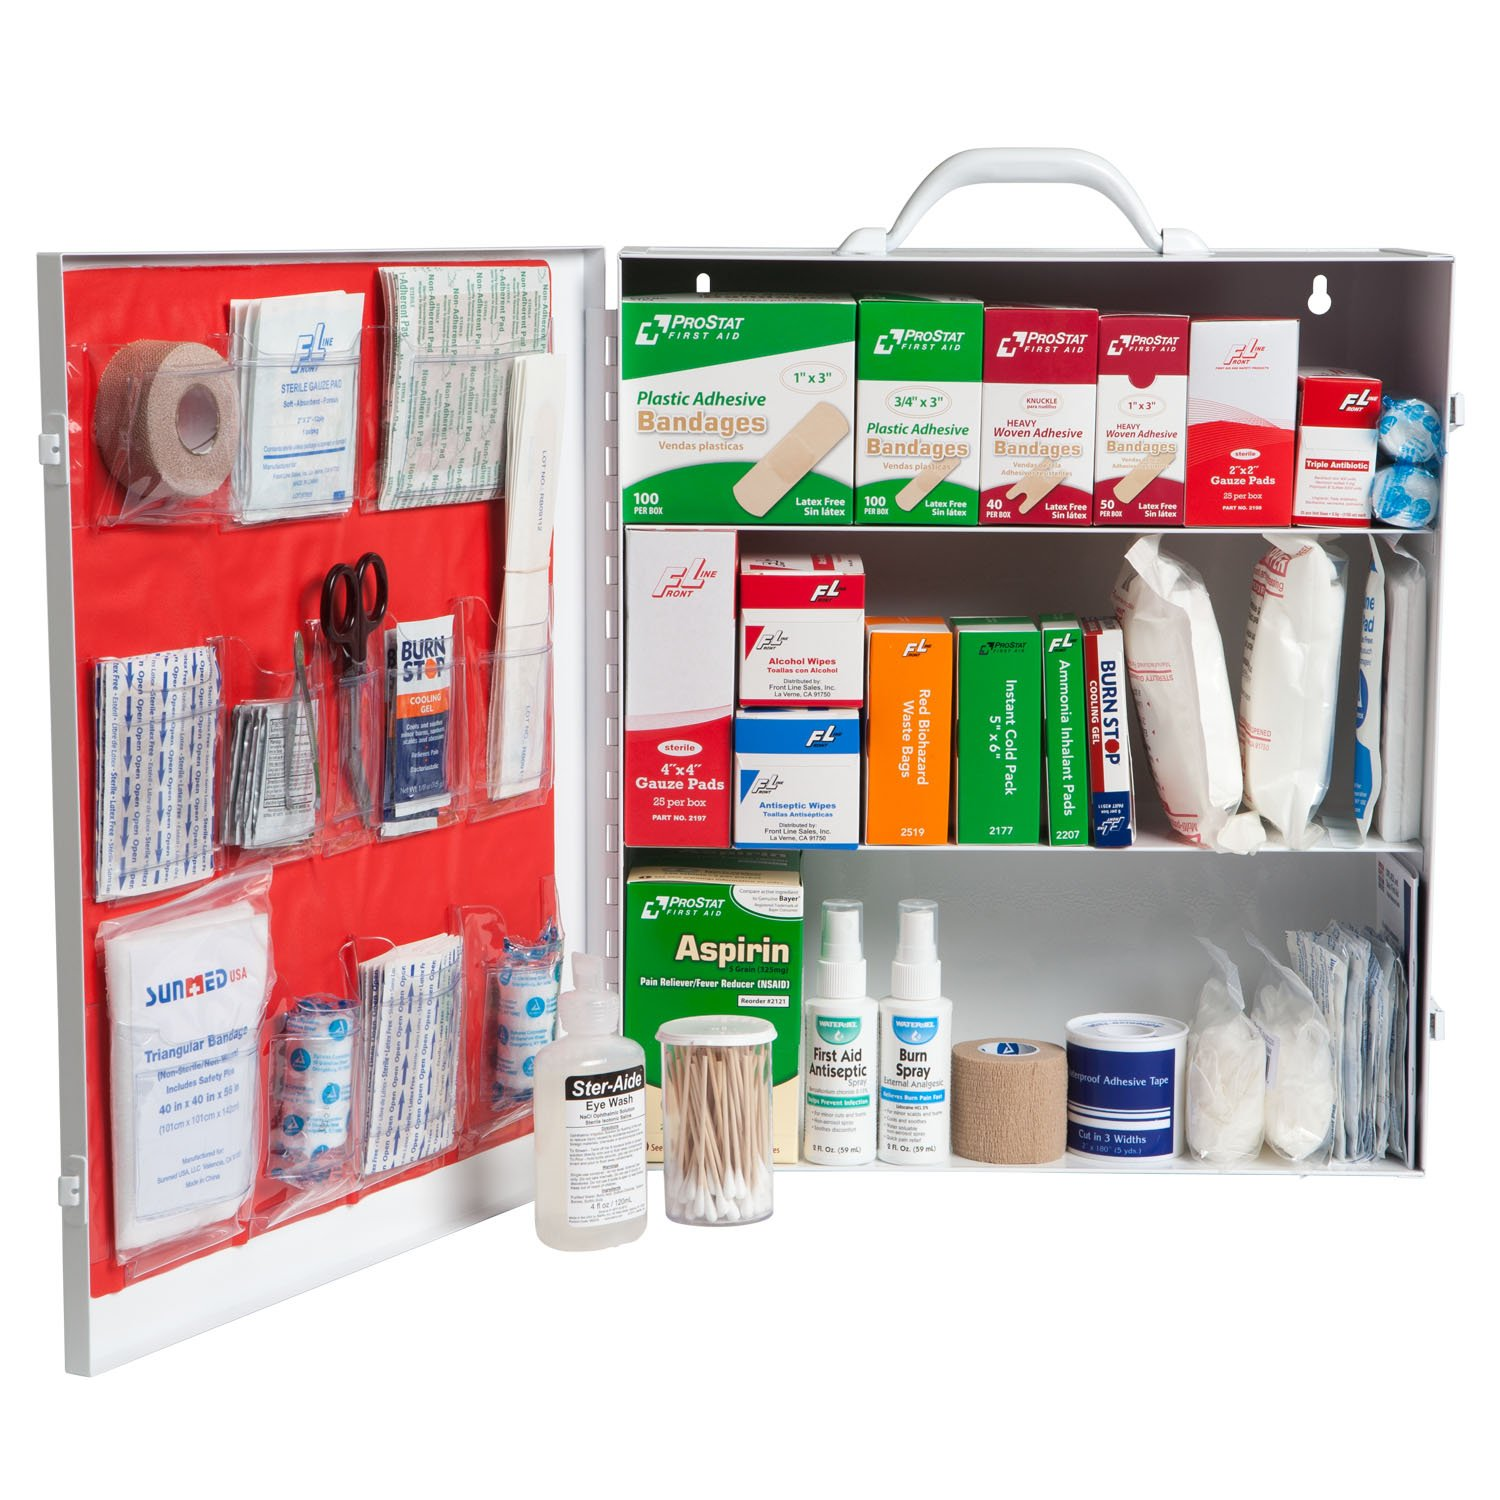 ProStat First Aid 0613 864 Piece First Aid Kit with 3 Shelf Cabinet